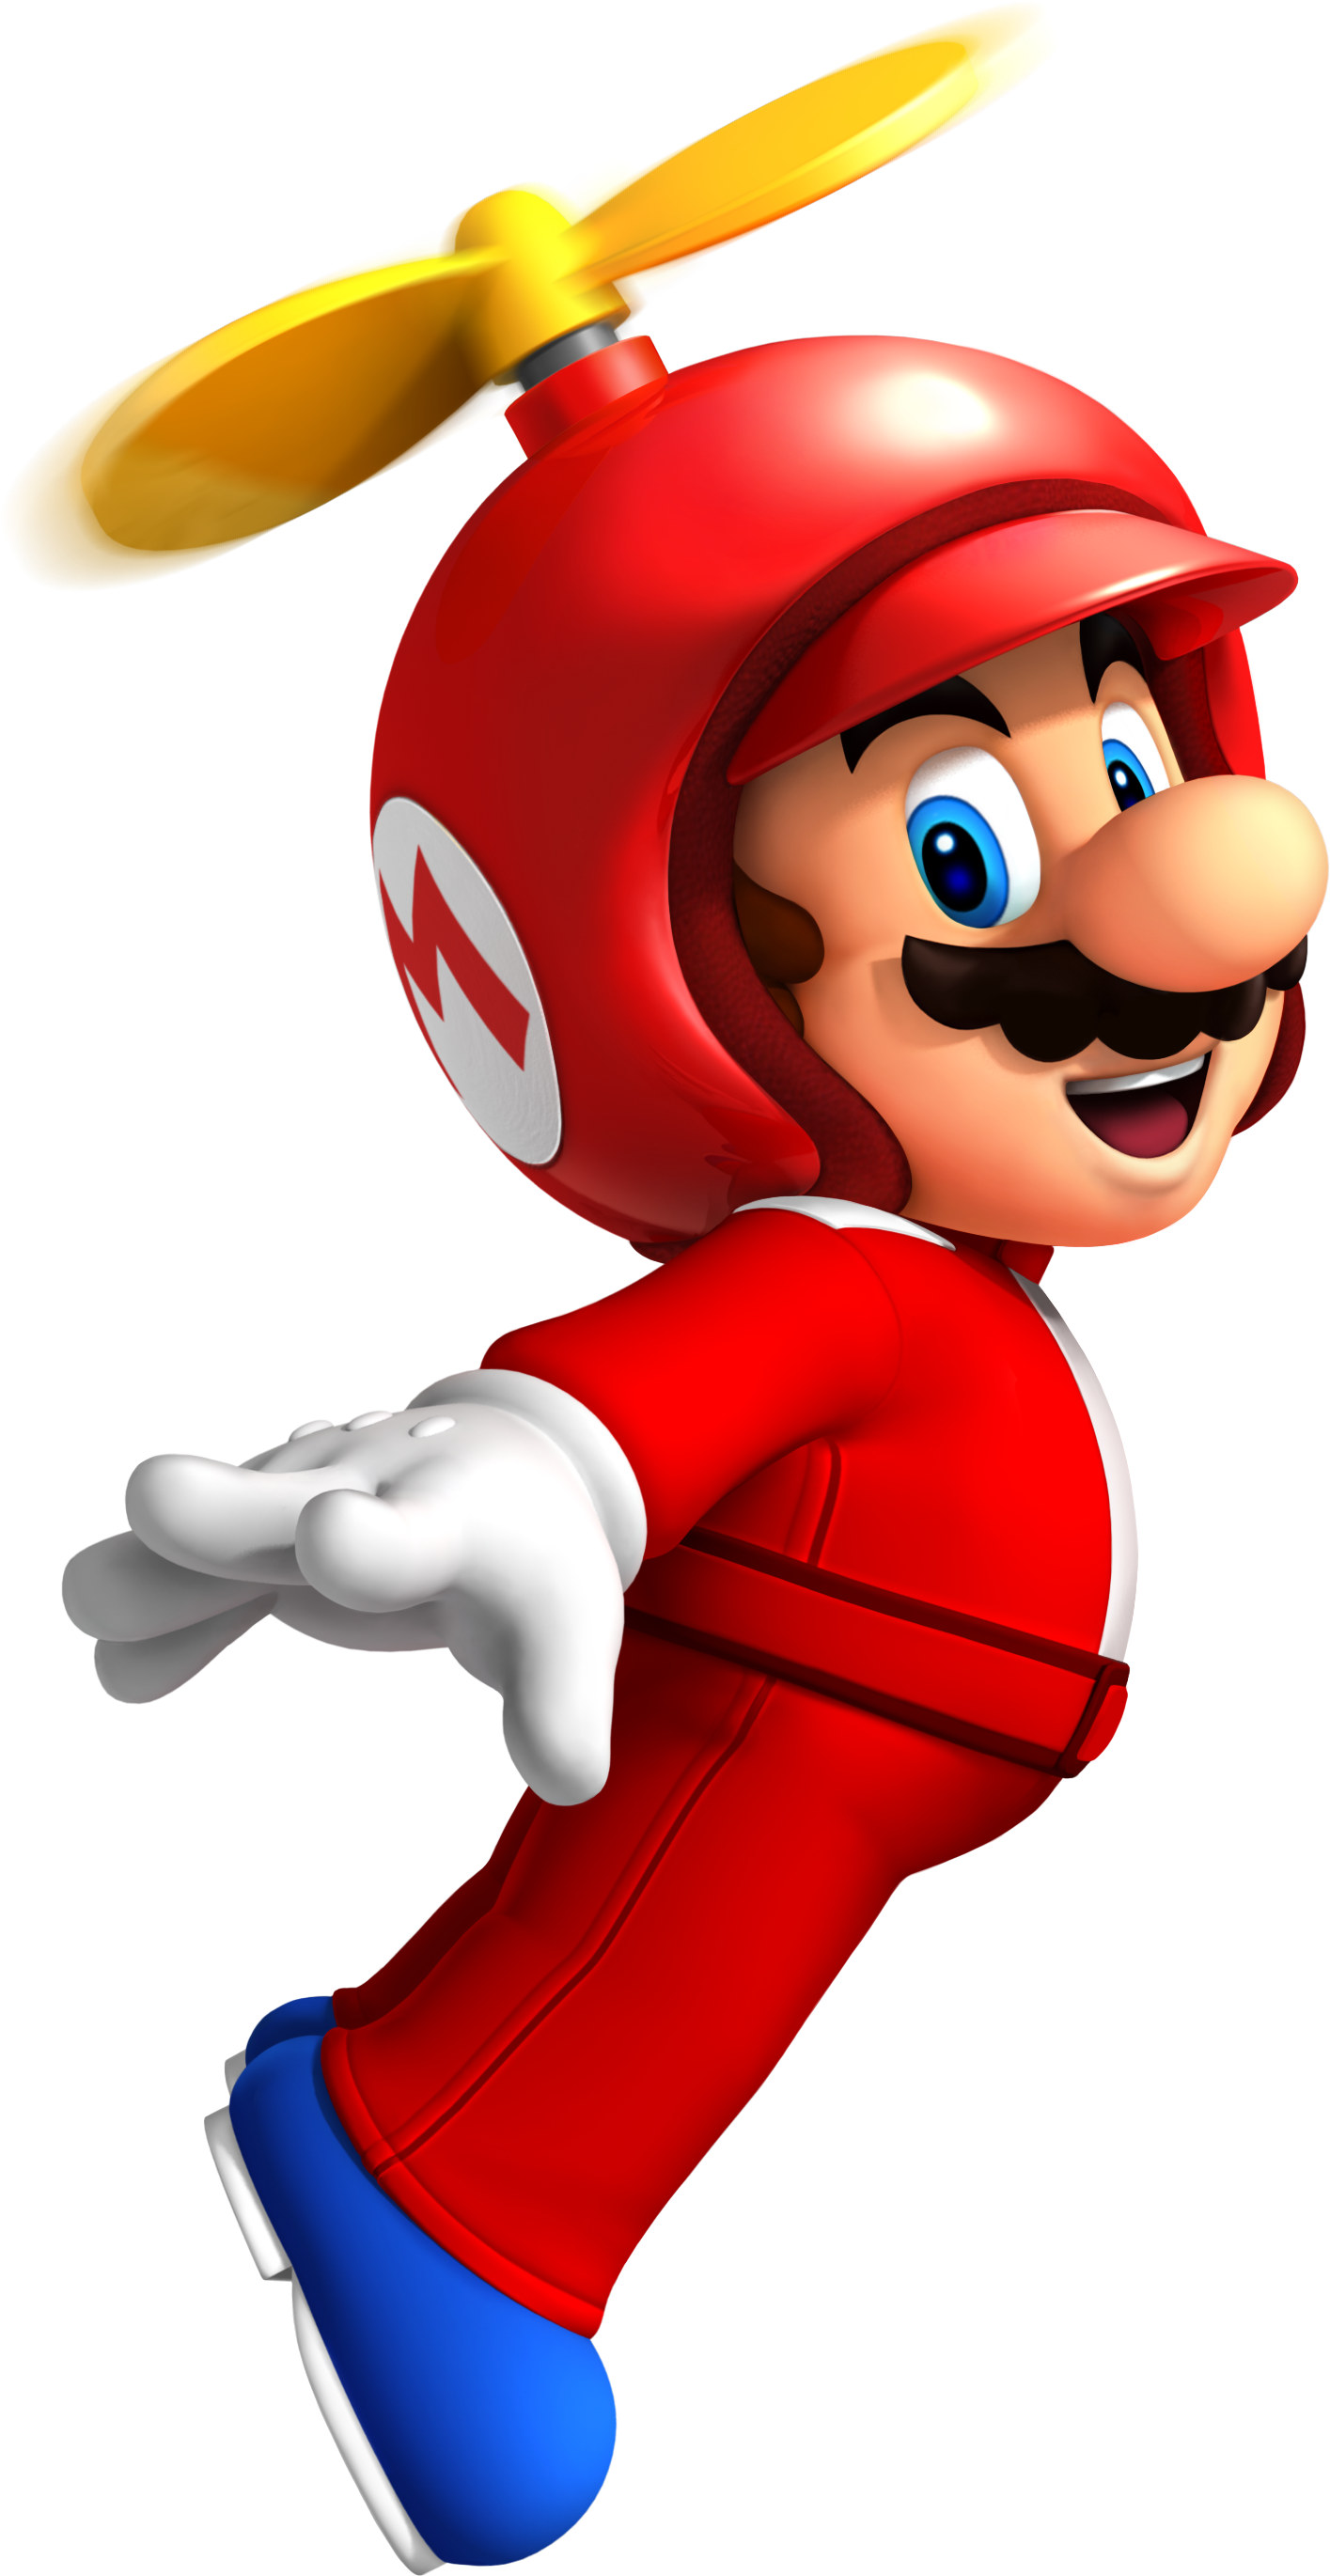 Download and use Mario In PNG